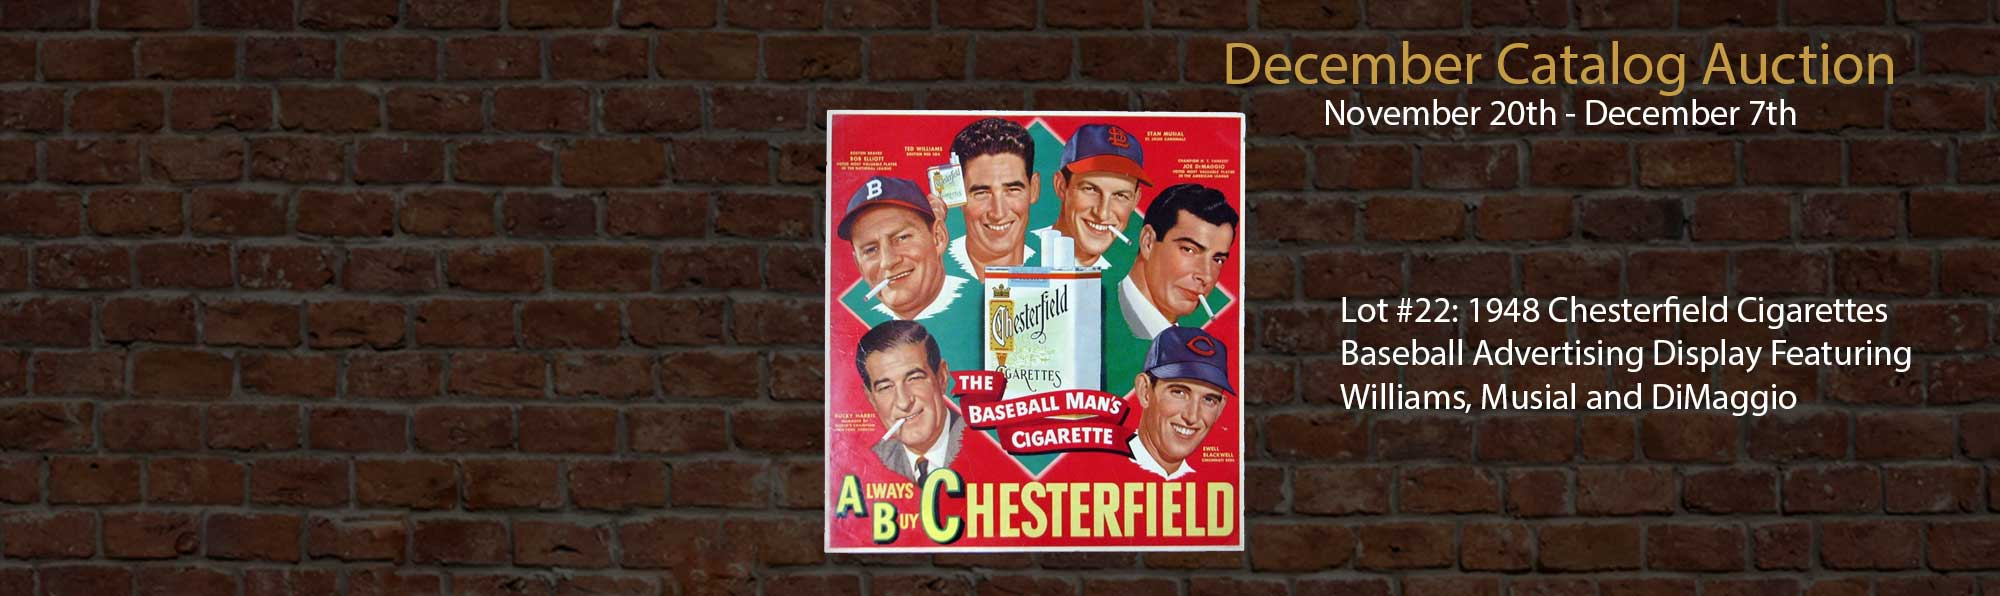 1948 Chesterfield Cigarettes  Baseball Advertising Display Featuring  Williams, Musial and DiMaggio